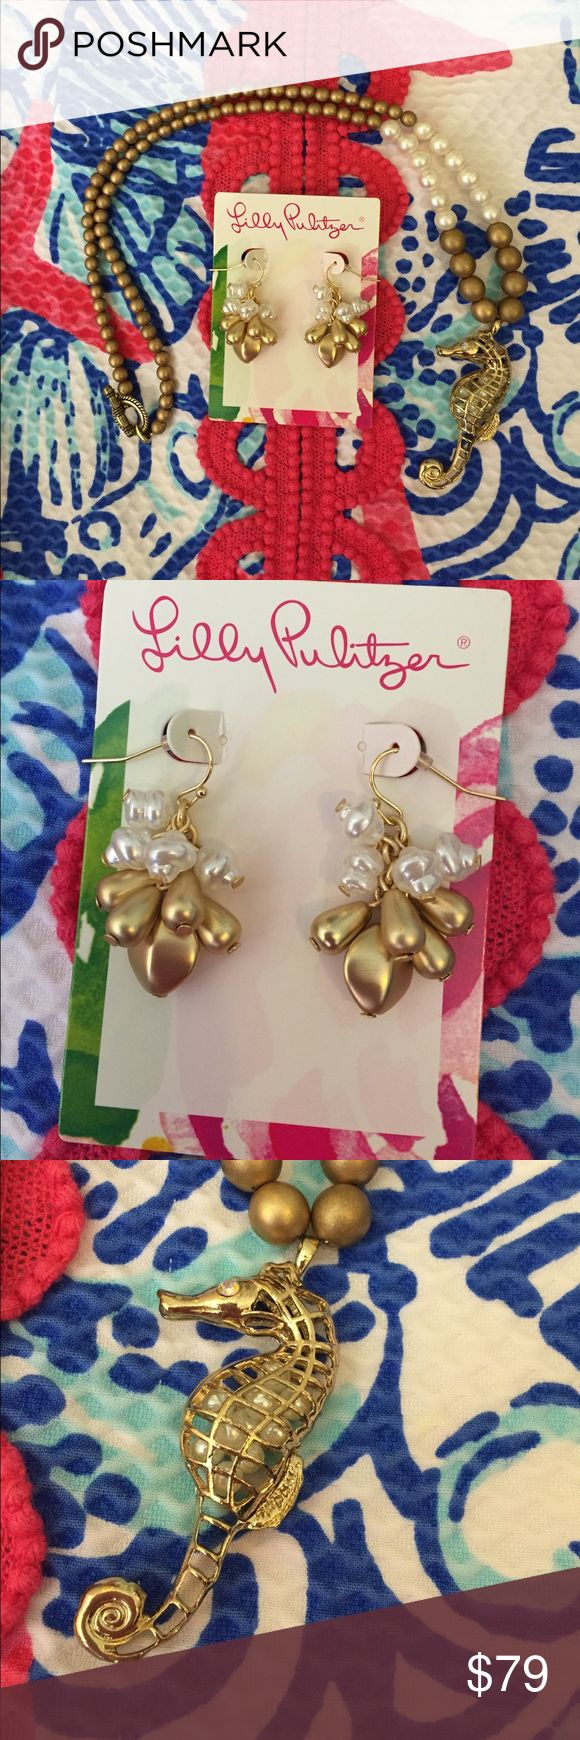 Lilly Pulitzer Pearl earrings &REAL Pearl necklace NEW Lilly Pulitzer Pearl earrings with matching Handmade REAL pearls necklace 📿featuring a beautiful seahorse gold charm. Price is firm. No trades. Thanks for shopping with us! Lilly Pulitzer Jewelry